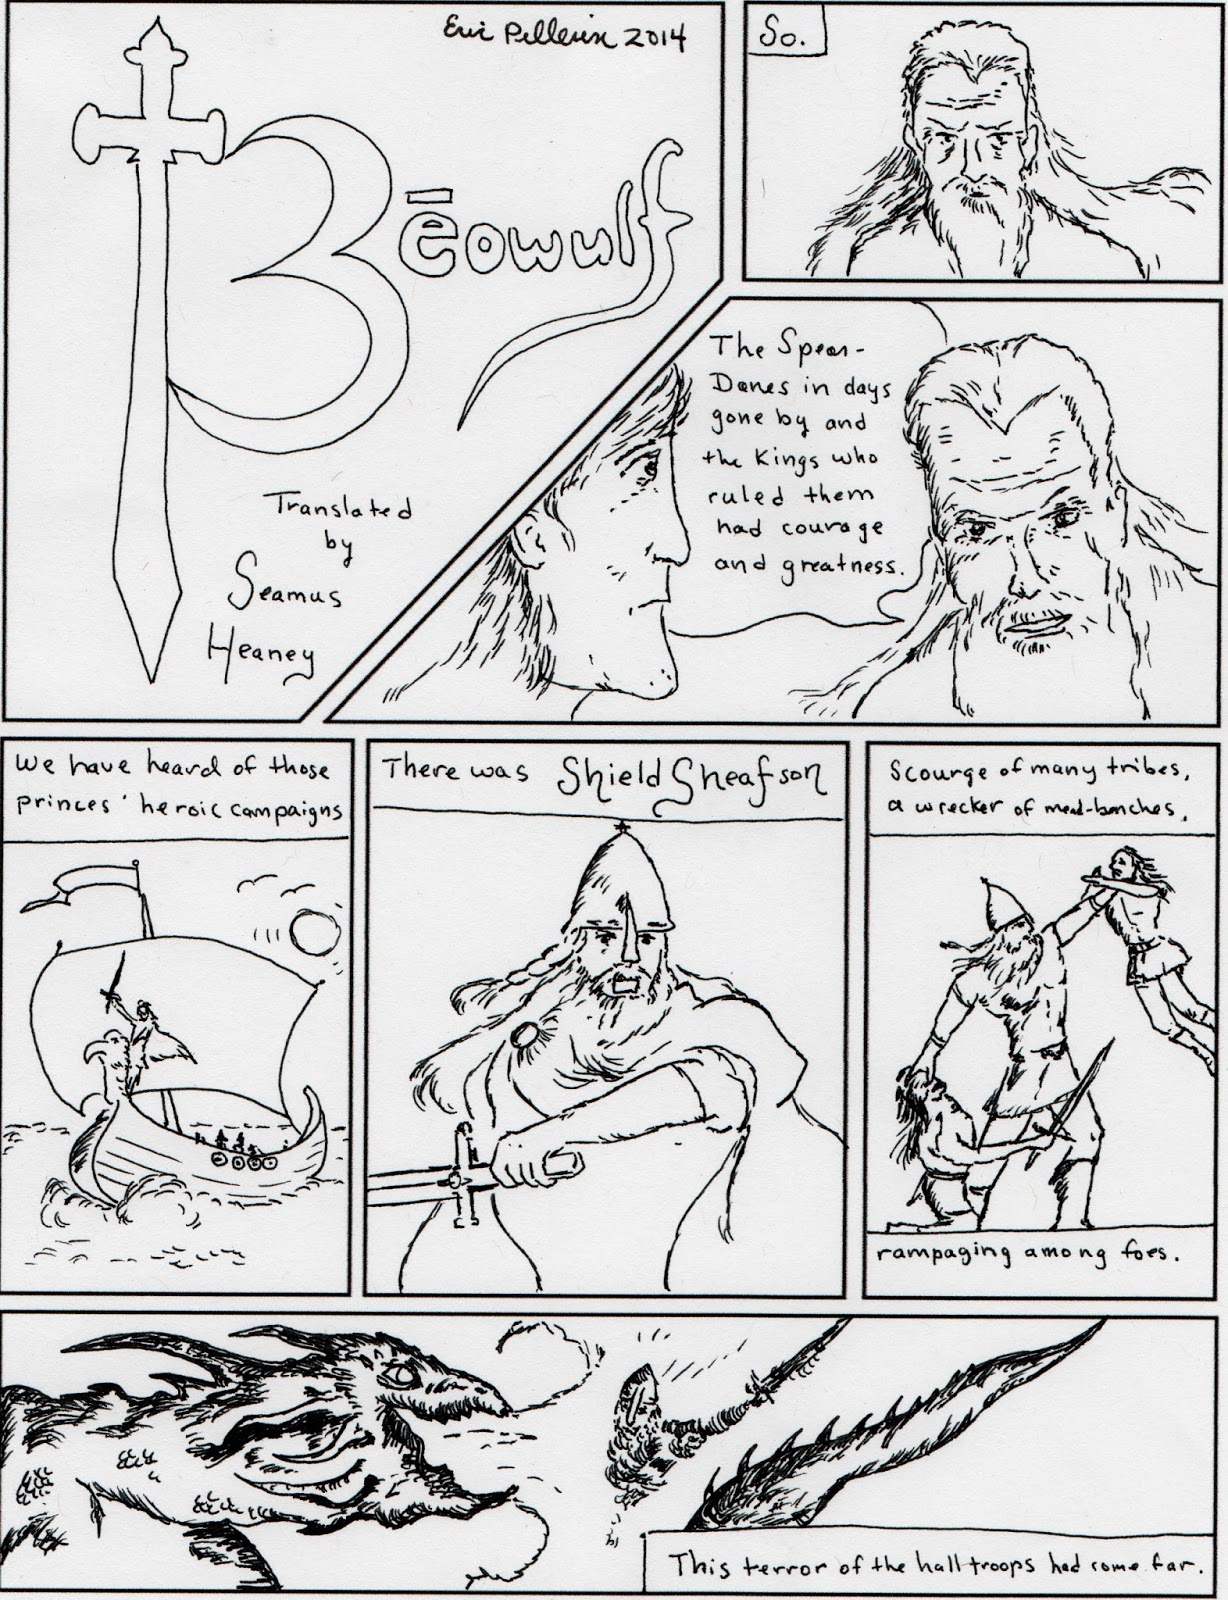 essay comparing beowulf and macbeth Comparing the movie of the 13th warrior and the epic of beowulf 13th warriorâ that compare to scenes in beowulf the witches in macbeth and to.